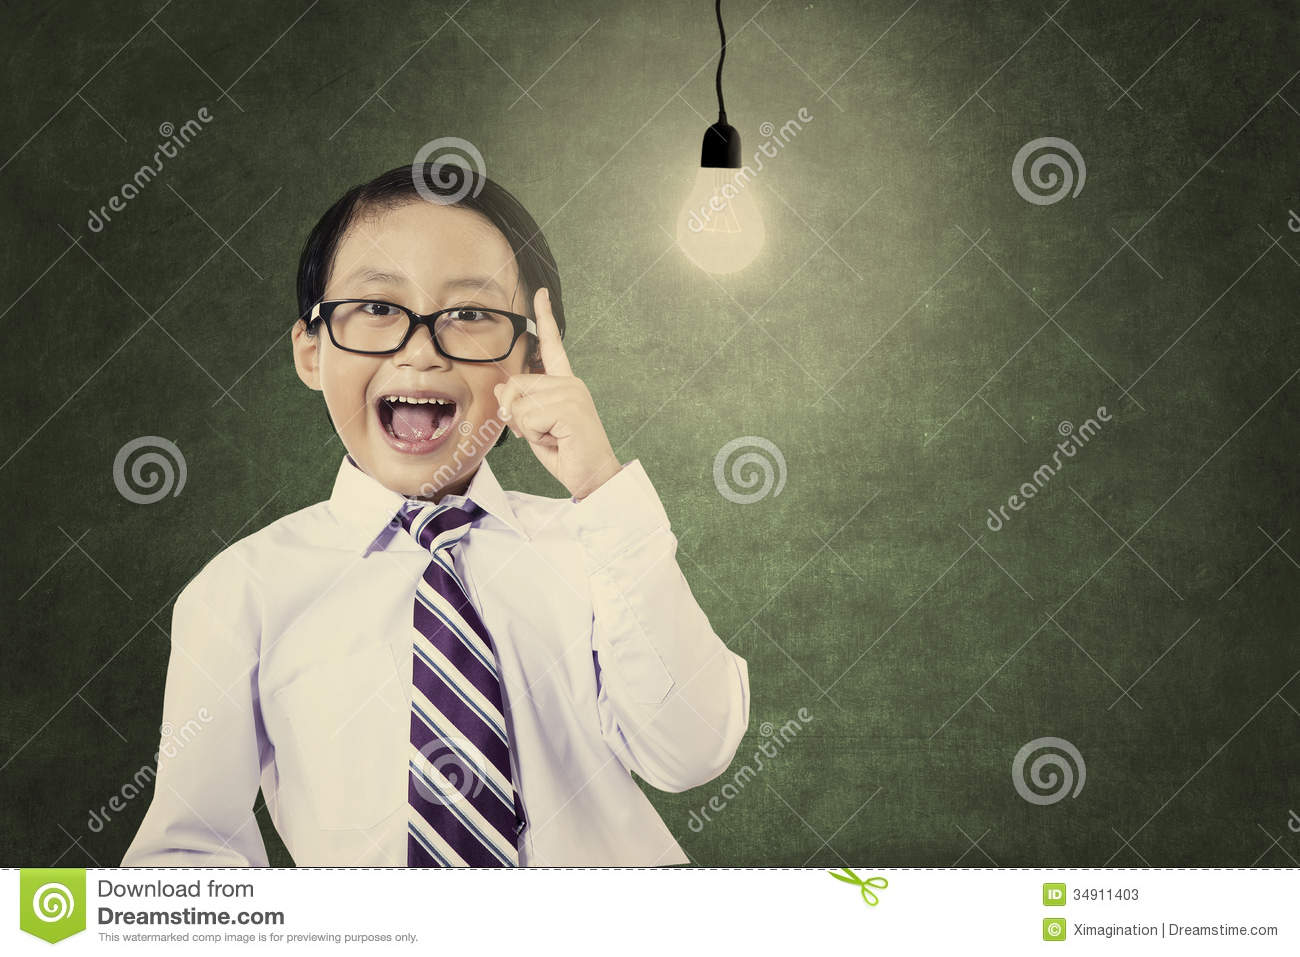 Classroom Design Clipart ~ Genius schoolboy with light bulb stock photos image